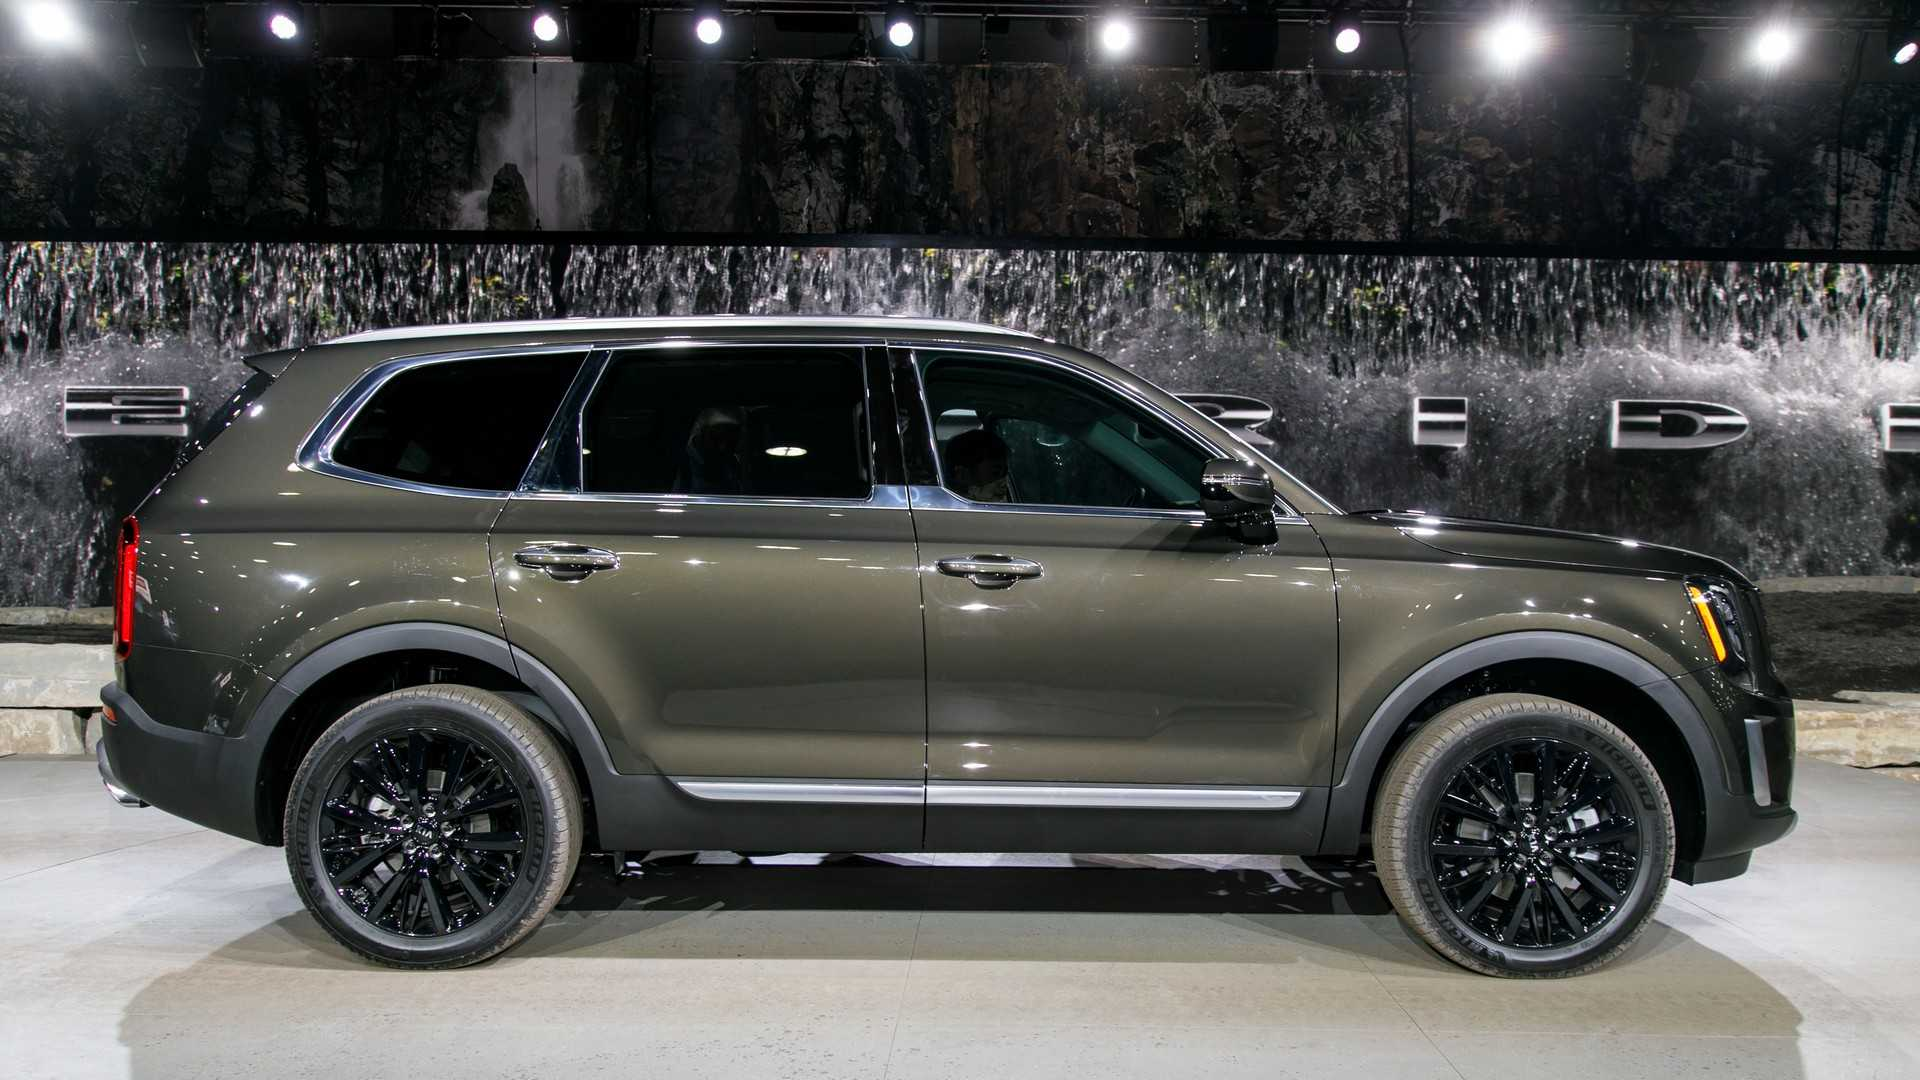 2020 Kia Telluride: Design, Specs, Arrival, Price >> 2020 Kia Telluride Arrives In Detroit With Eight Seats And V6 Power